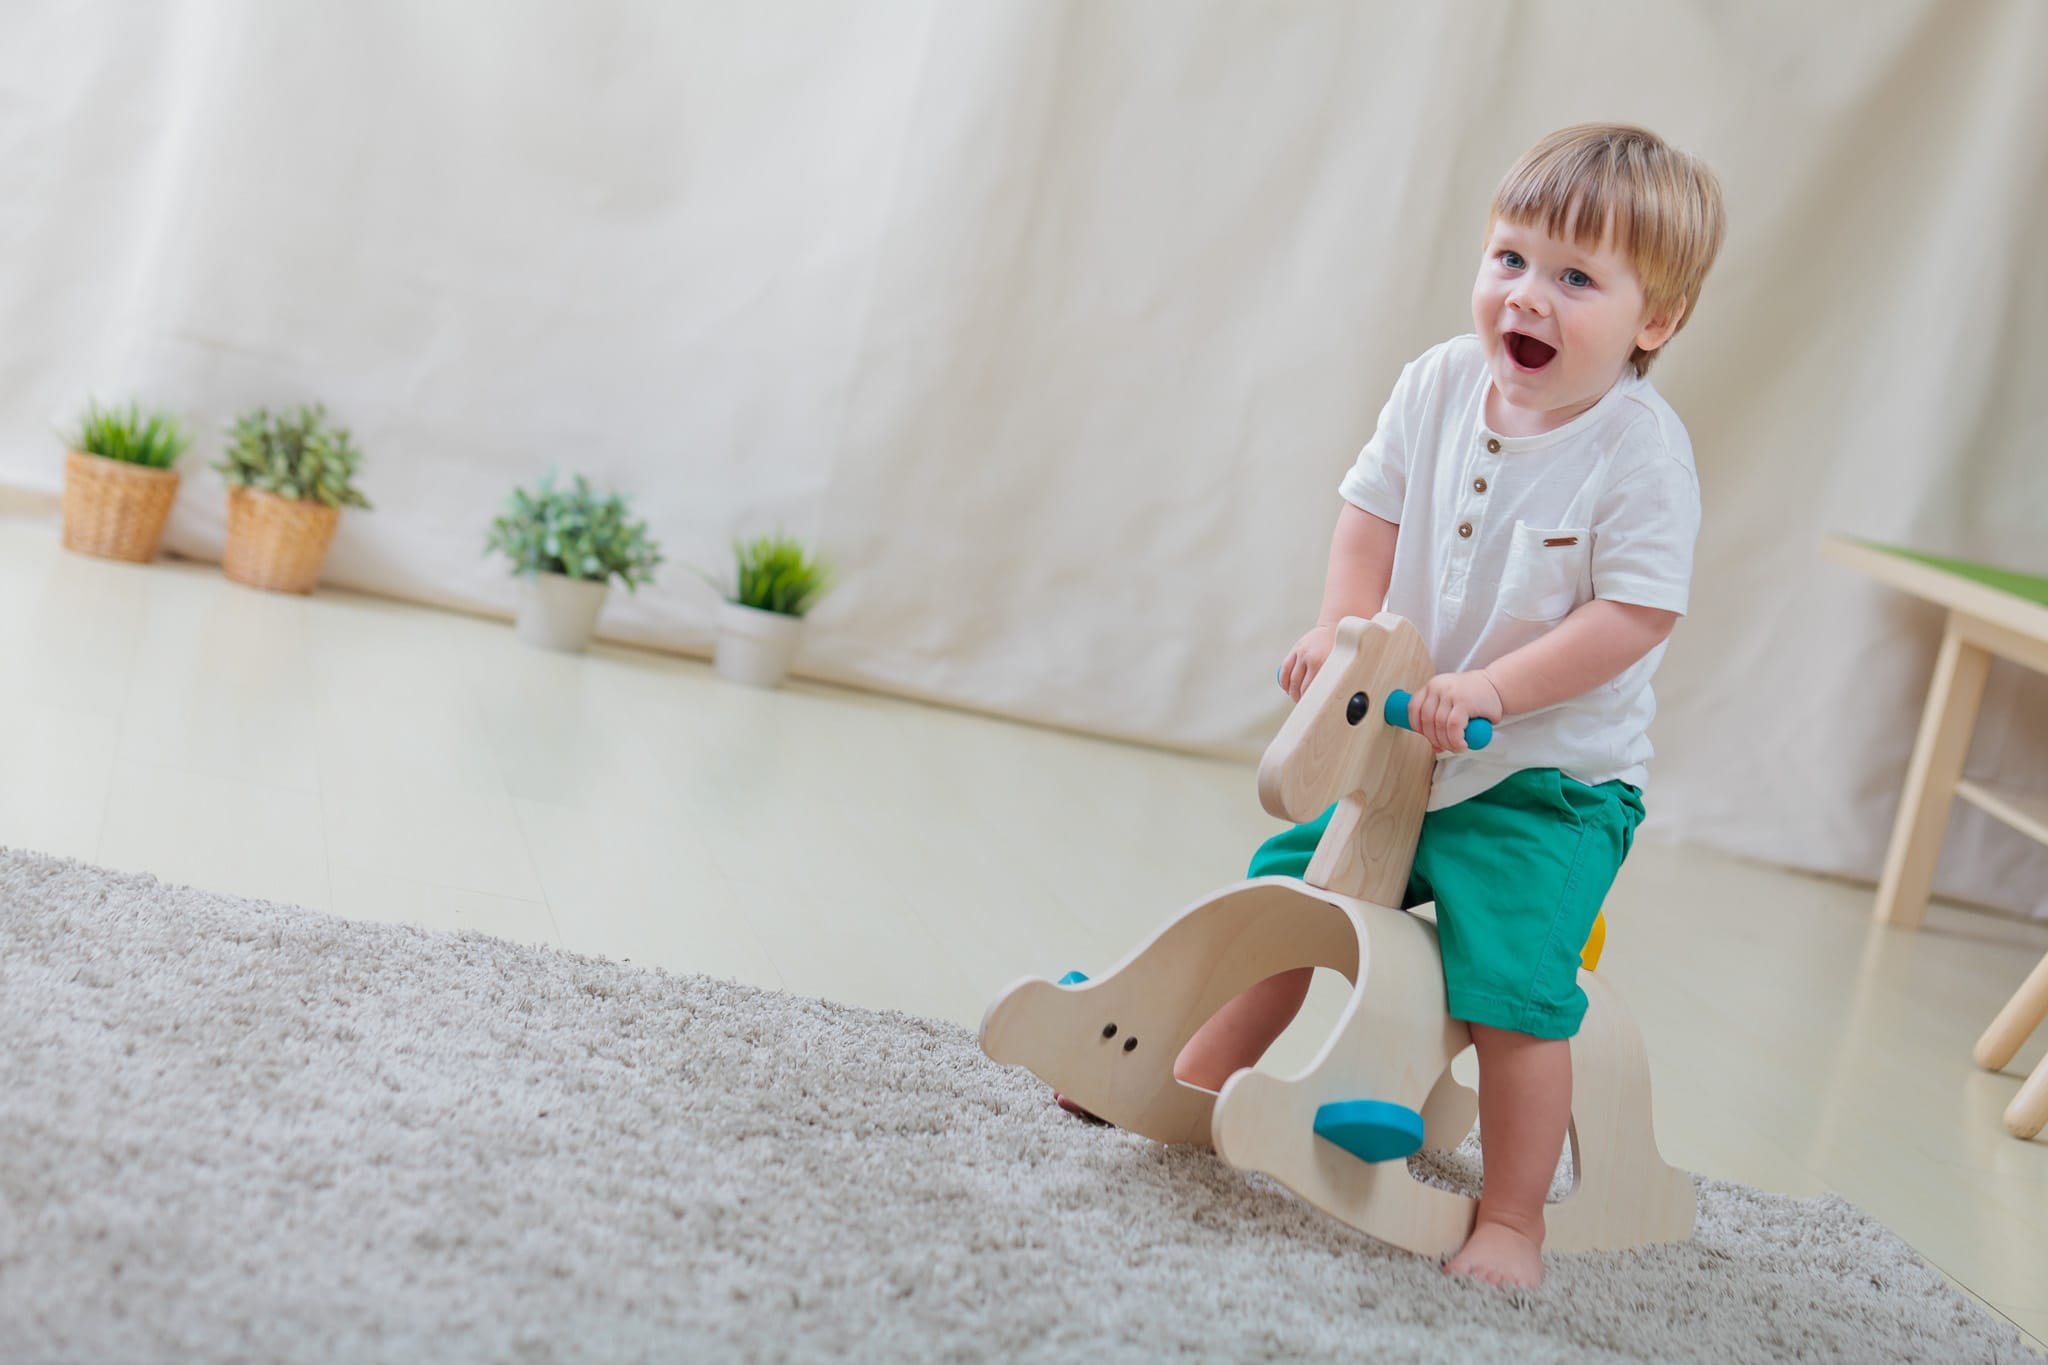 3403_PlanToys_PALOMINO_Active_Play_Gross_Motor_Coordination_Imagination_Language_and_Communications_2yrs_Wooden_toys_Education_toys_Safety_Toys_Non-toxic_6.jpg